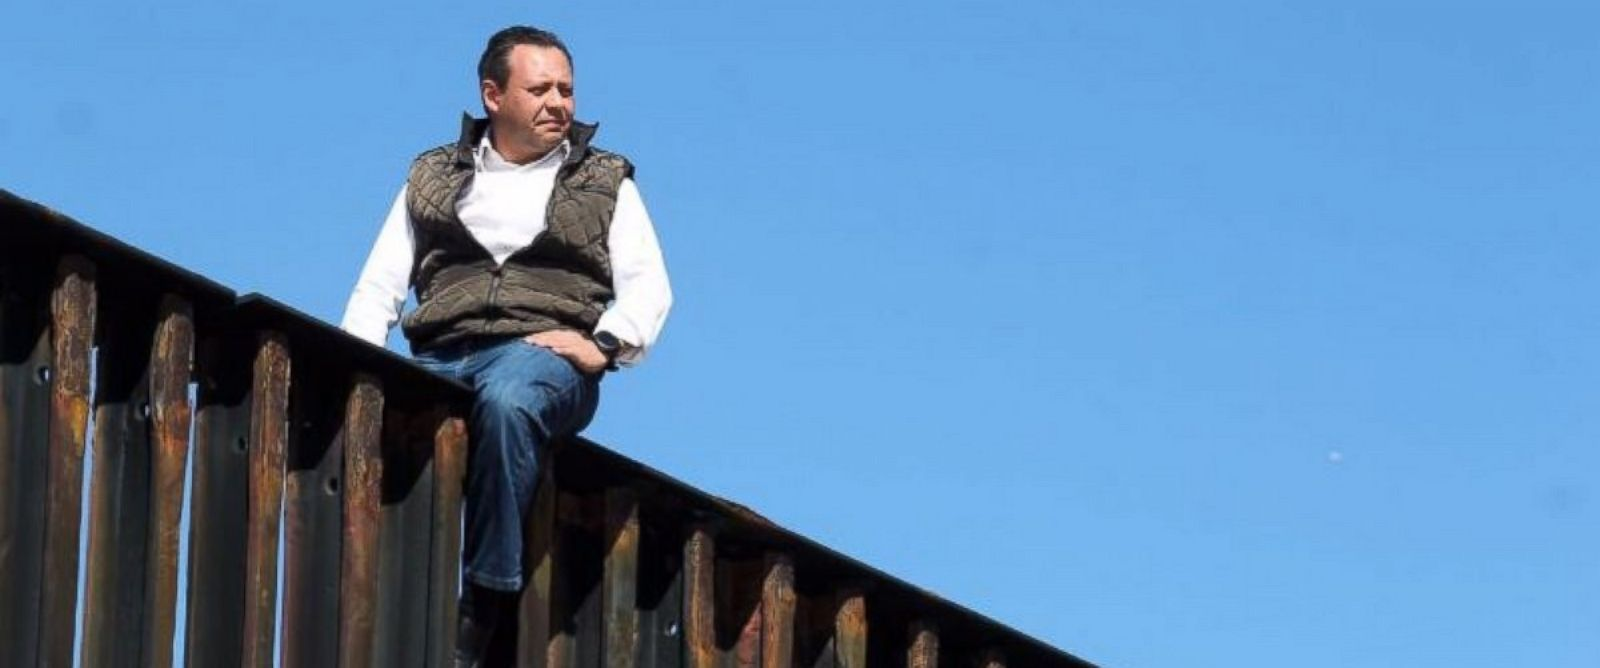 PHOTO: Mexican congressman Braulio Guerra sits atop the U.S.-Mexico border wall that divides Tijuana, Mexico, from California on March 1, 2017.